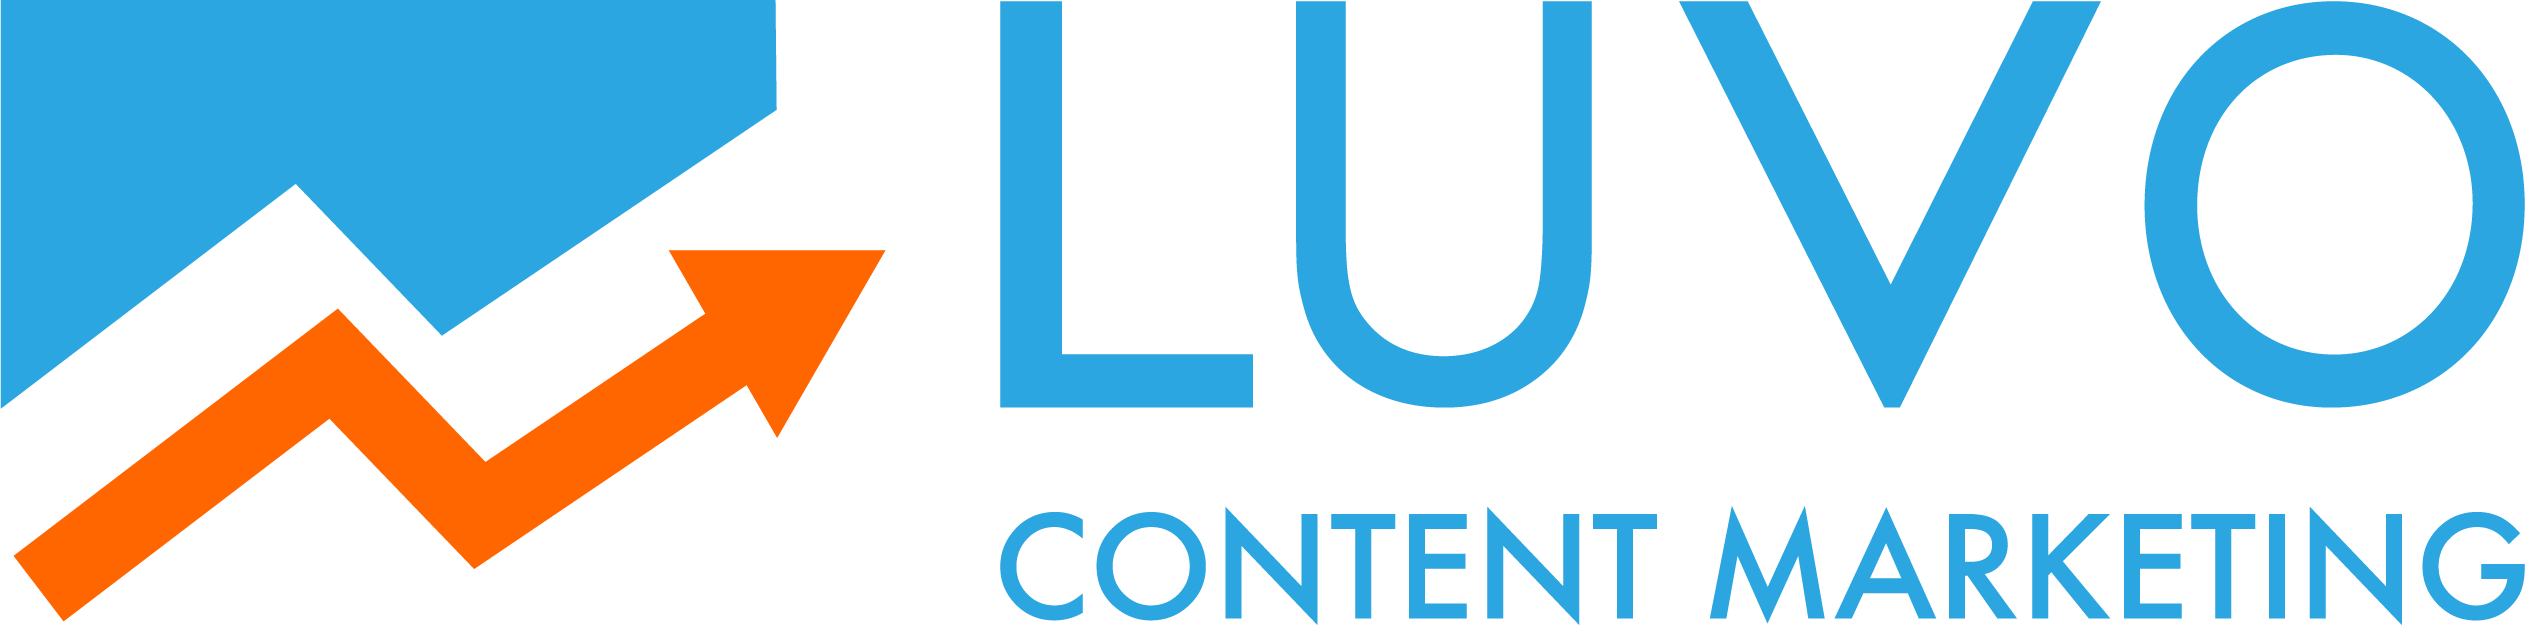 LUVO Content Marketing